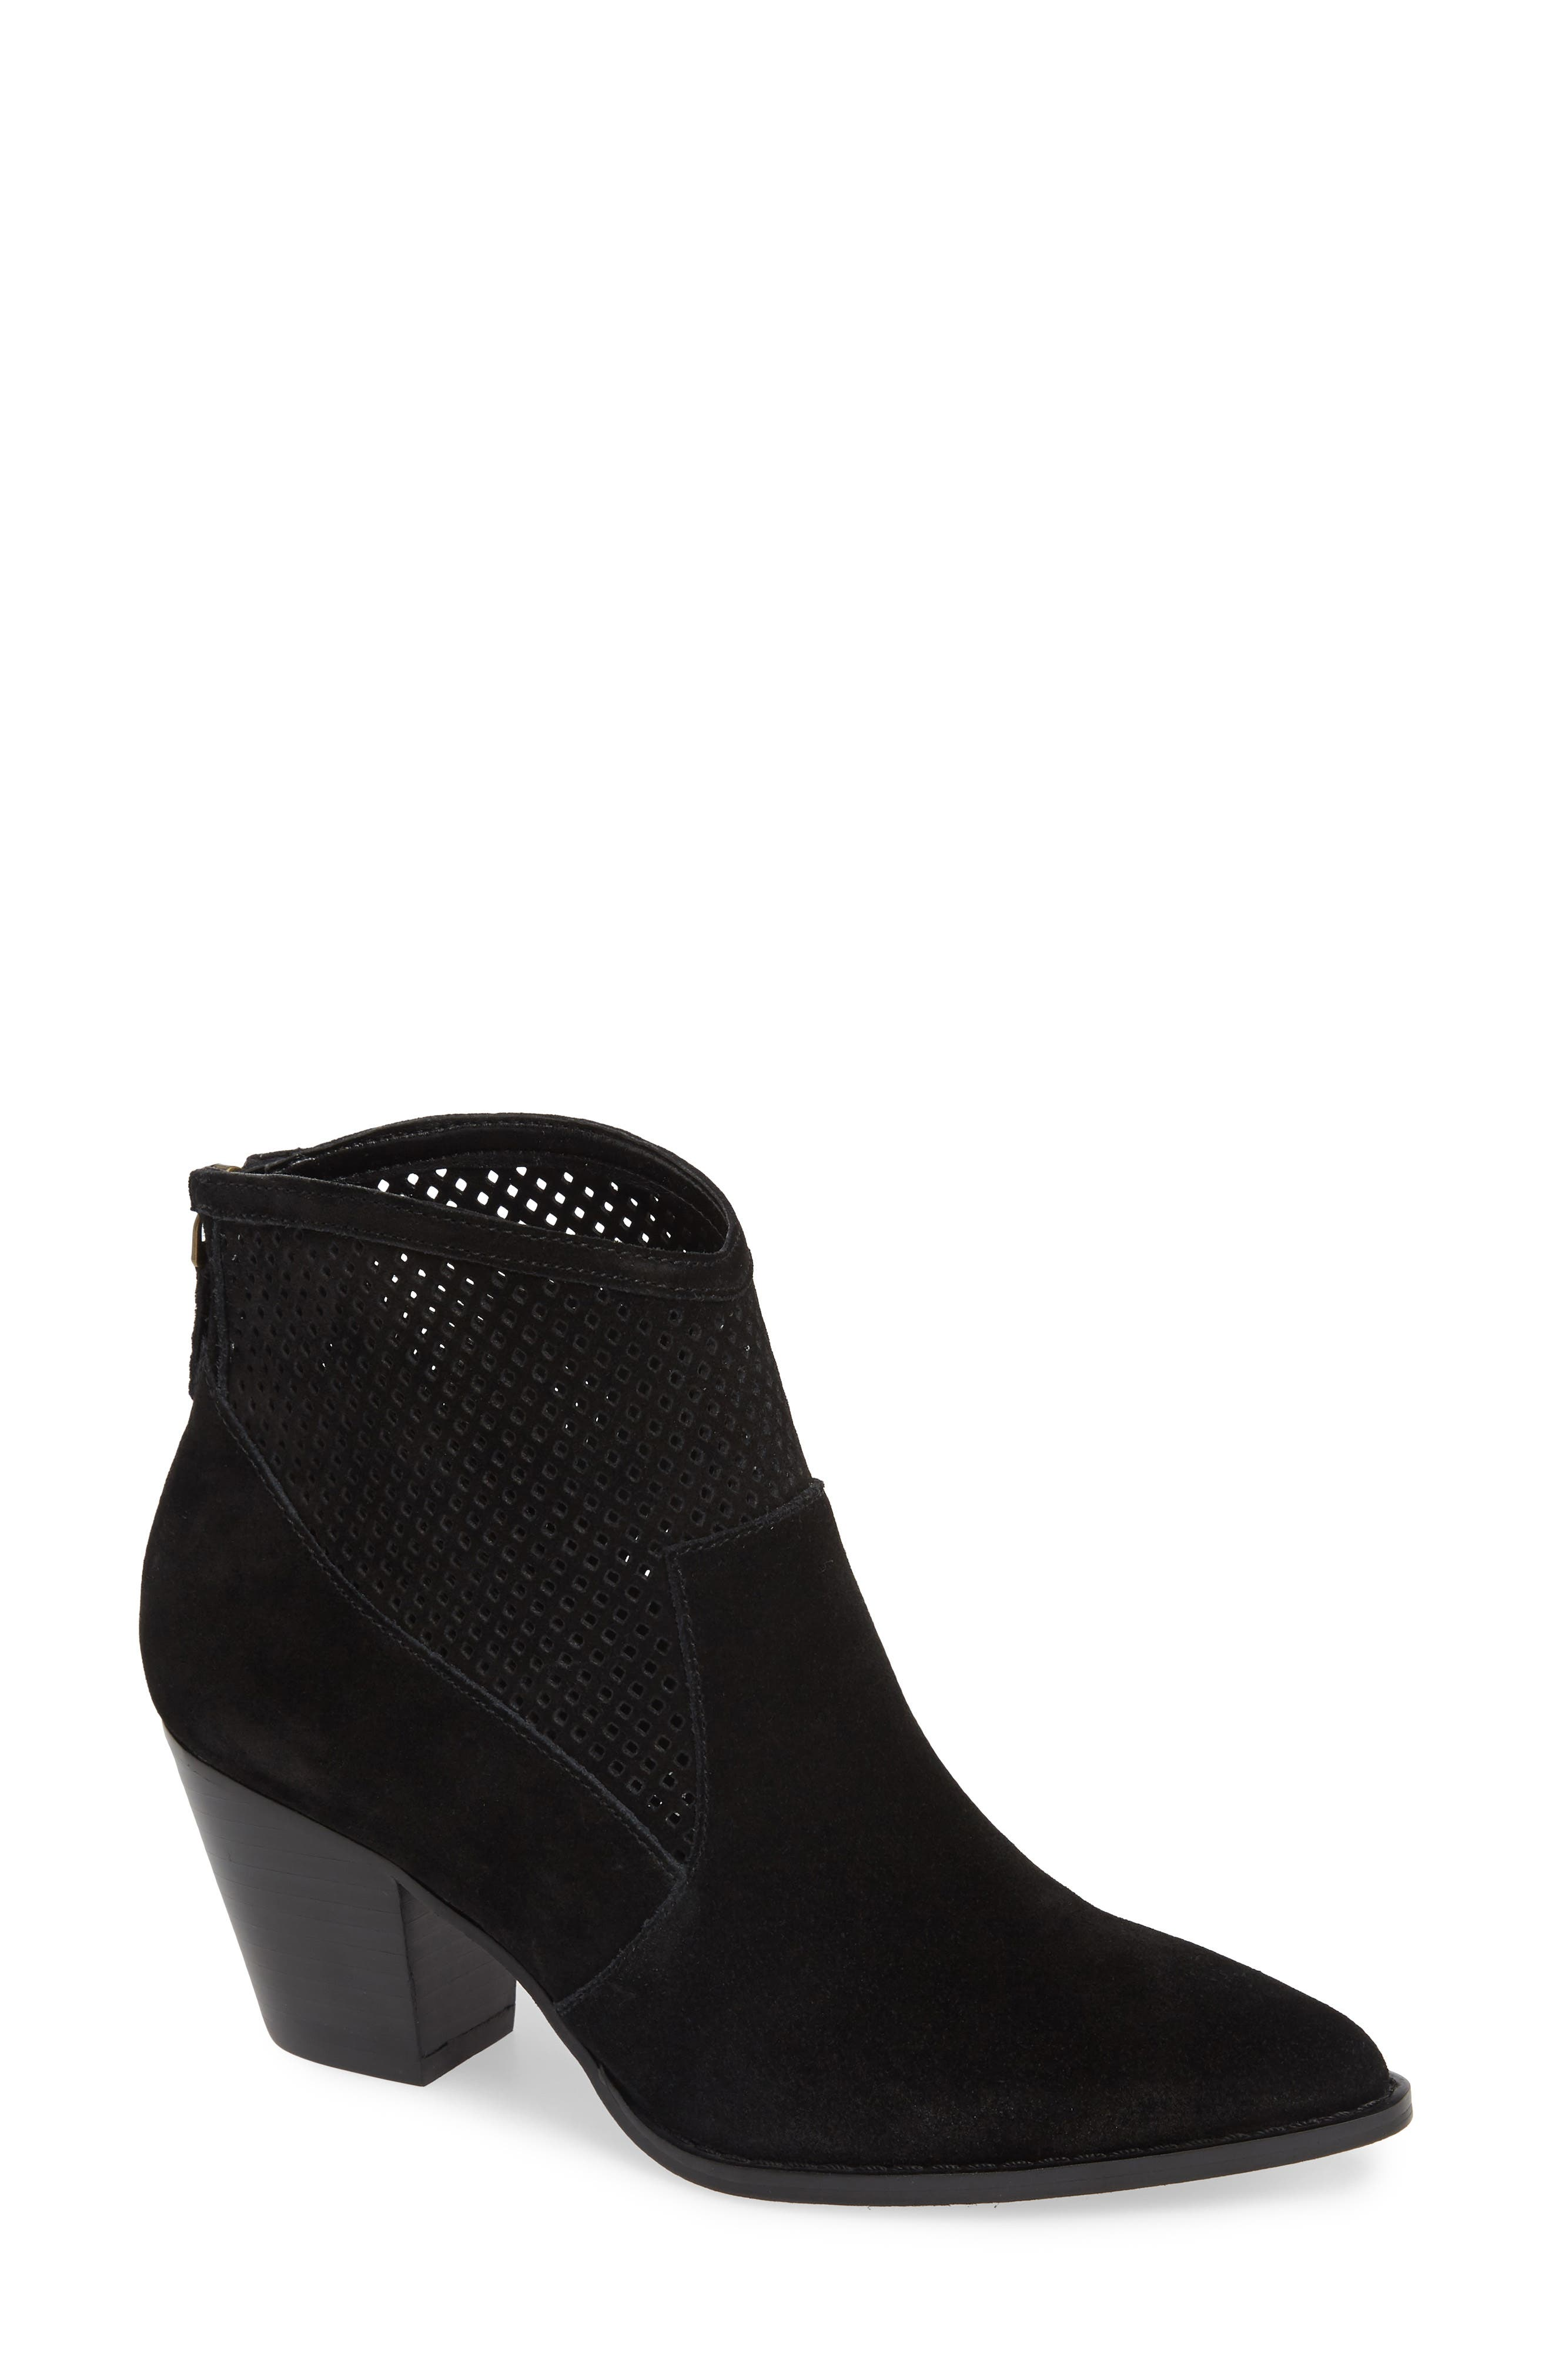 TREASURE & BOND,                             Boone Perforated Western Bootie,                             Main thumbnail 1, color,                             BLACK SUEDE